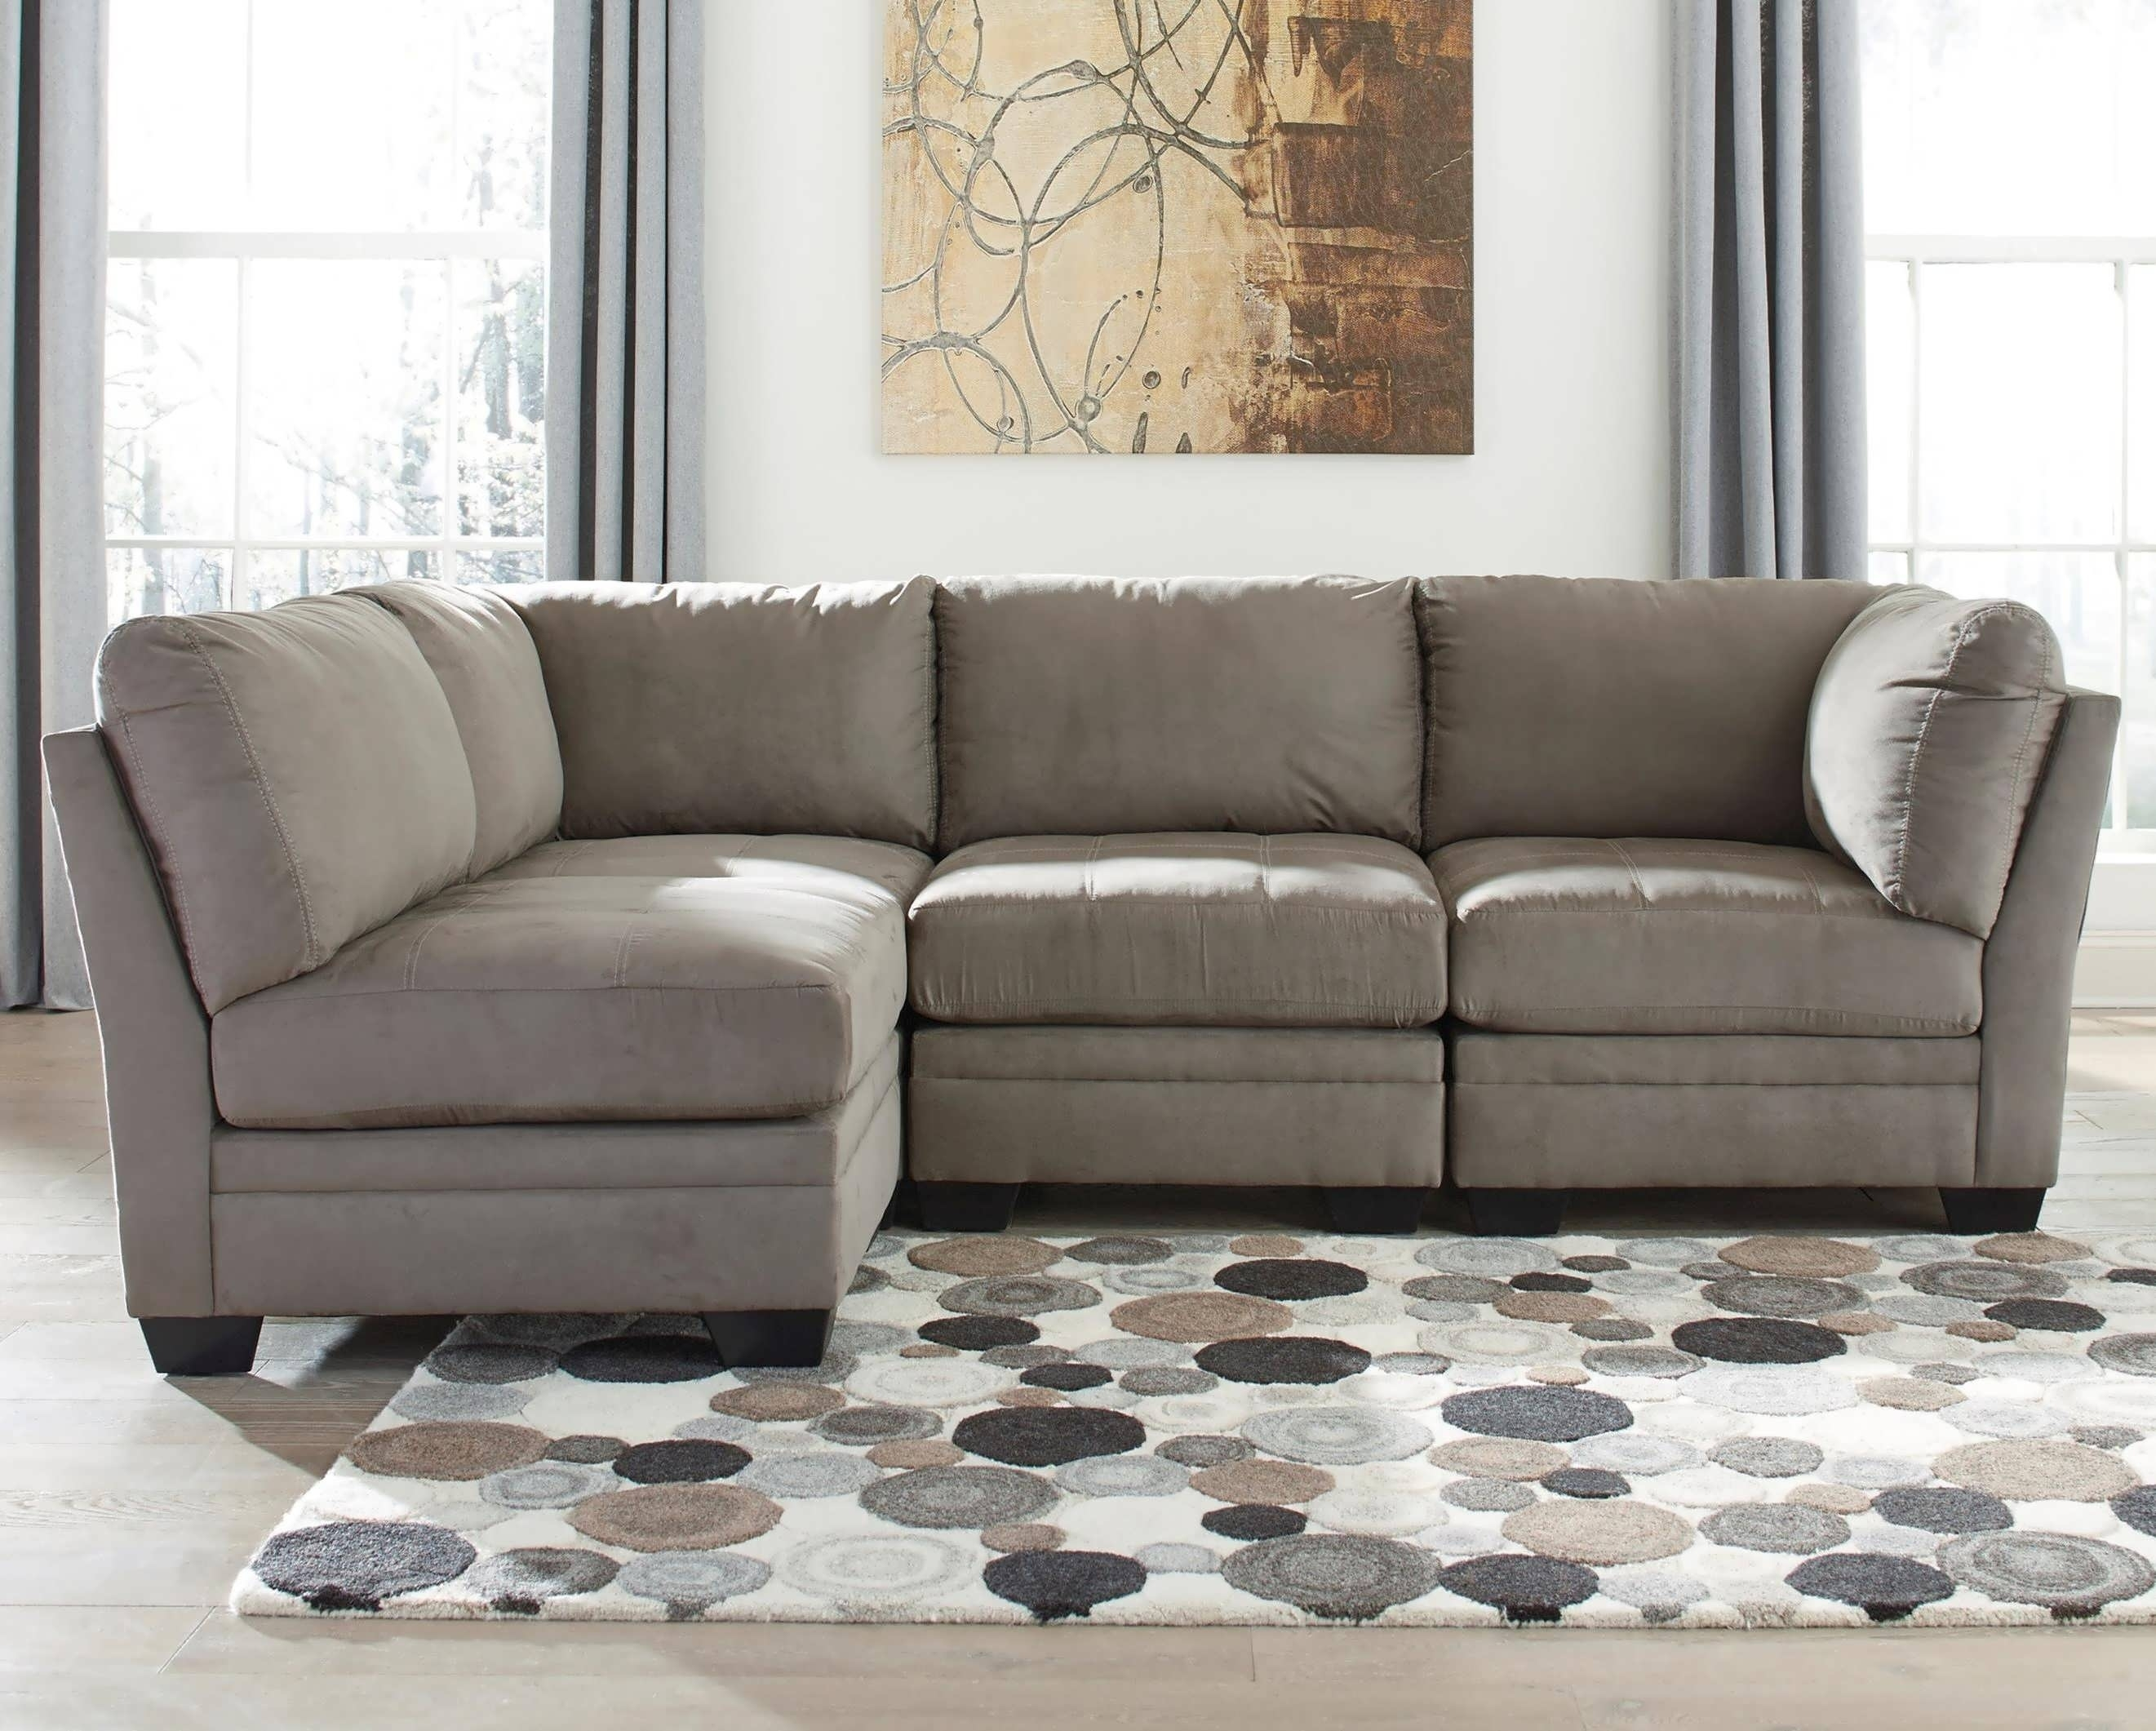 Two Piece Sectional Sofa Covers Everest With And Chaises Ashley Inside Meyer 3 Piece Sectionals With Laf Chaise (Image 25 of 25)